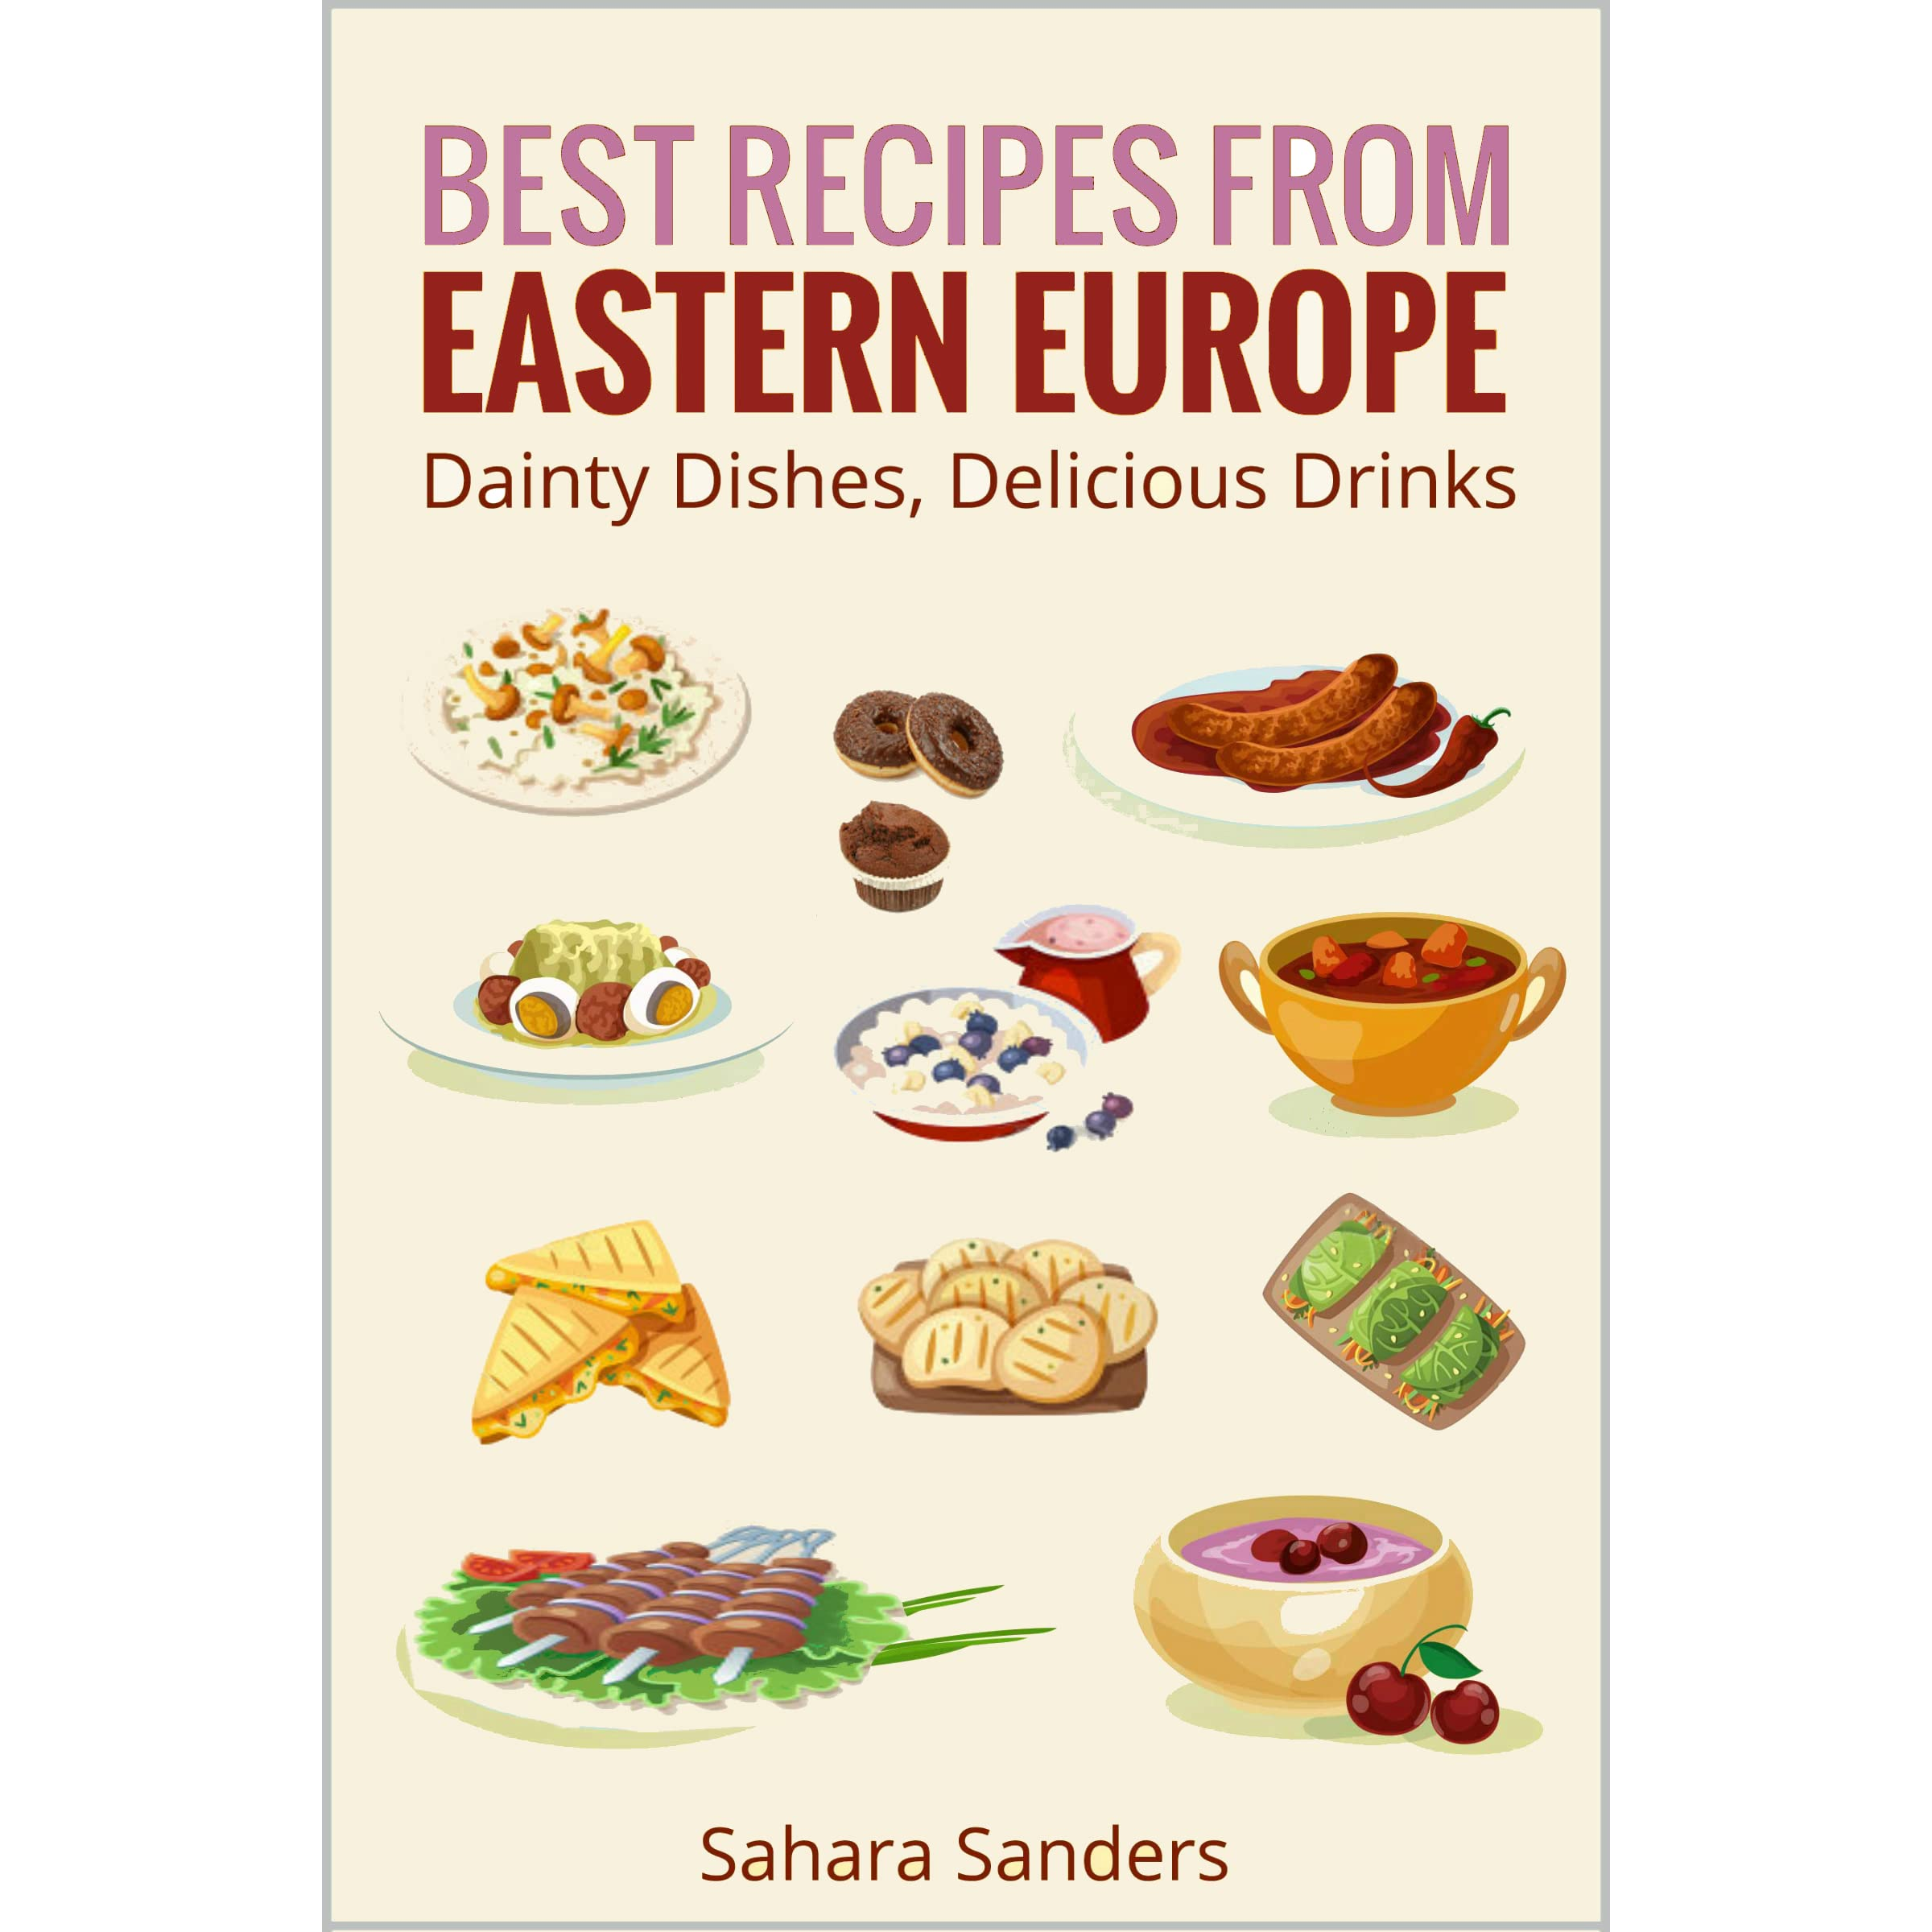 Best recipes from eastern europe dainty dishes delicious drinks by best recipes from eastern europe dainty dishes delicious drinks by sahara sanders forumfinder Image collections